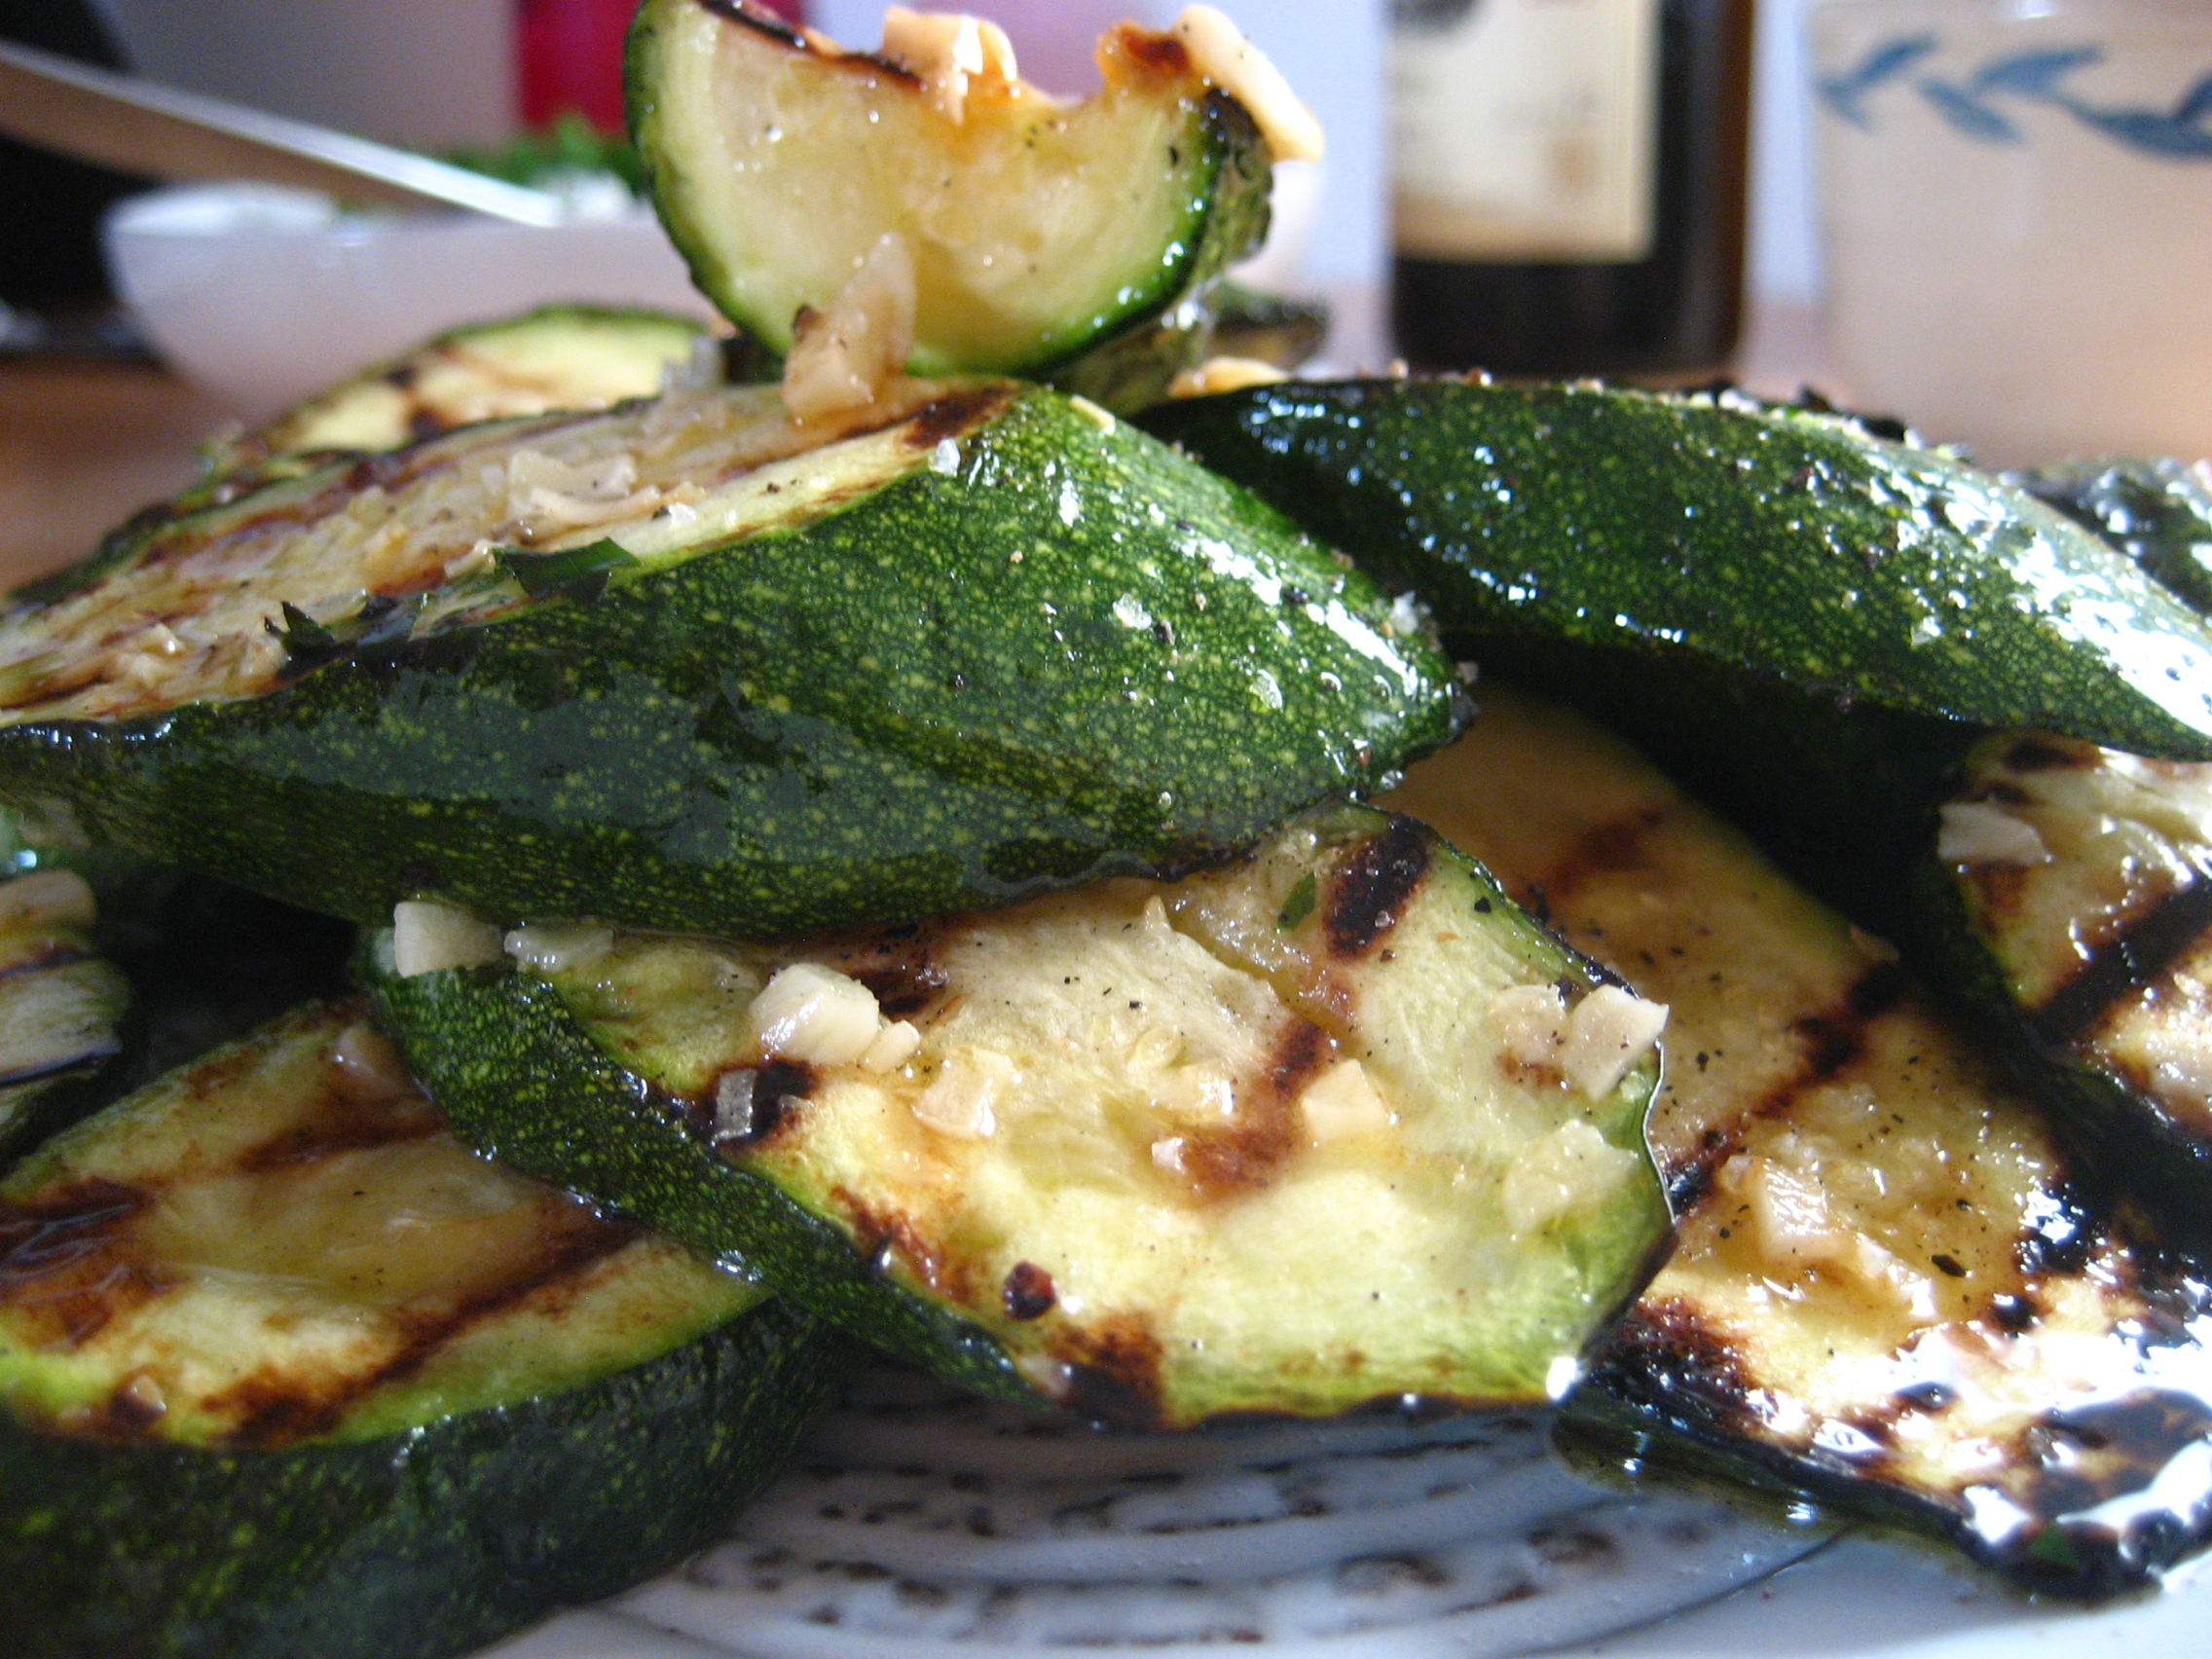 File:Grilled zucchini.jpg - Wikipedia, the free encyclopedia